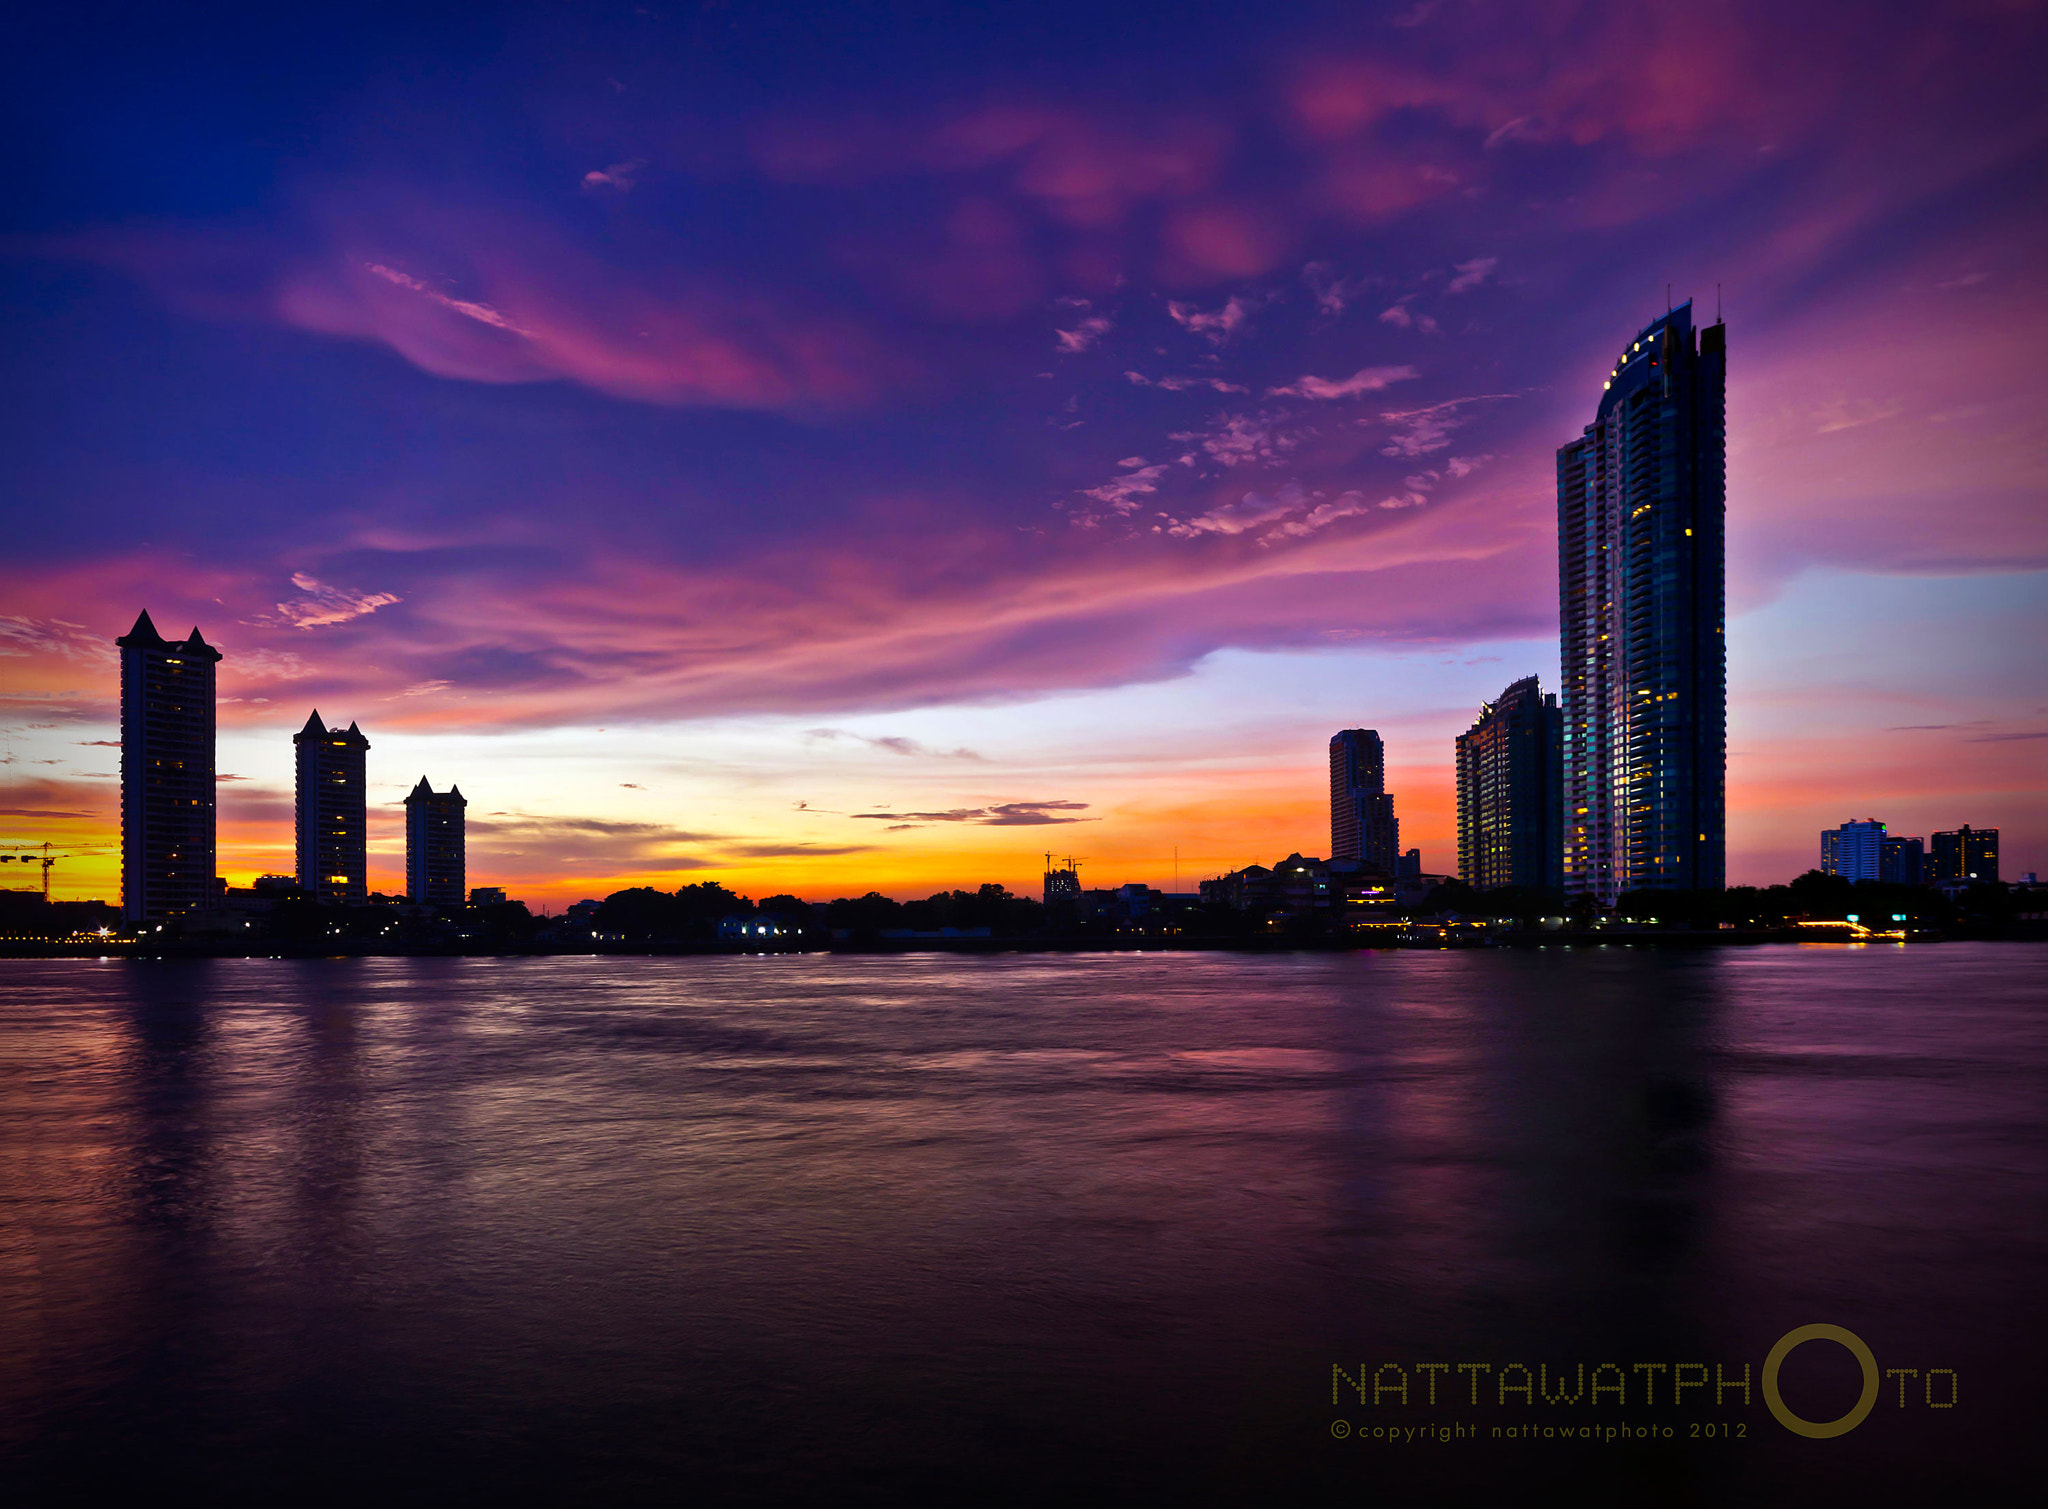 Photograph Colorful sky at ASIATIQUE by Nattawat Arpornkeart on 500px